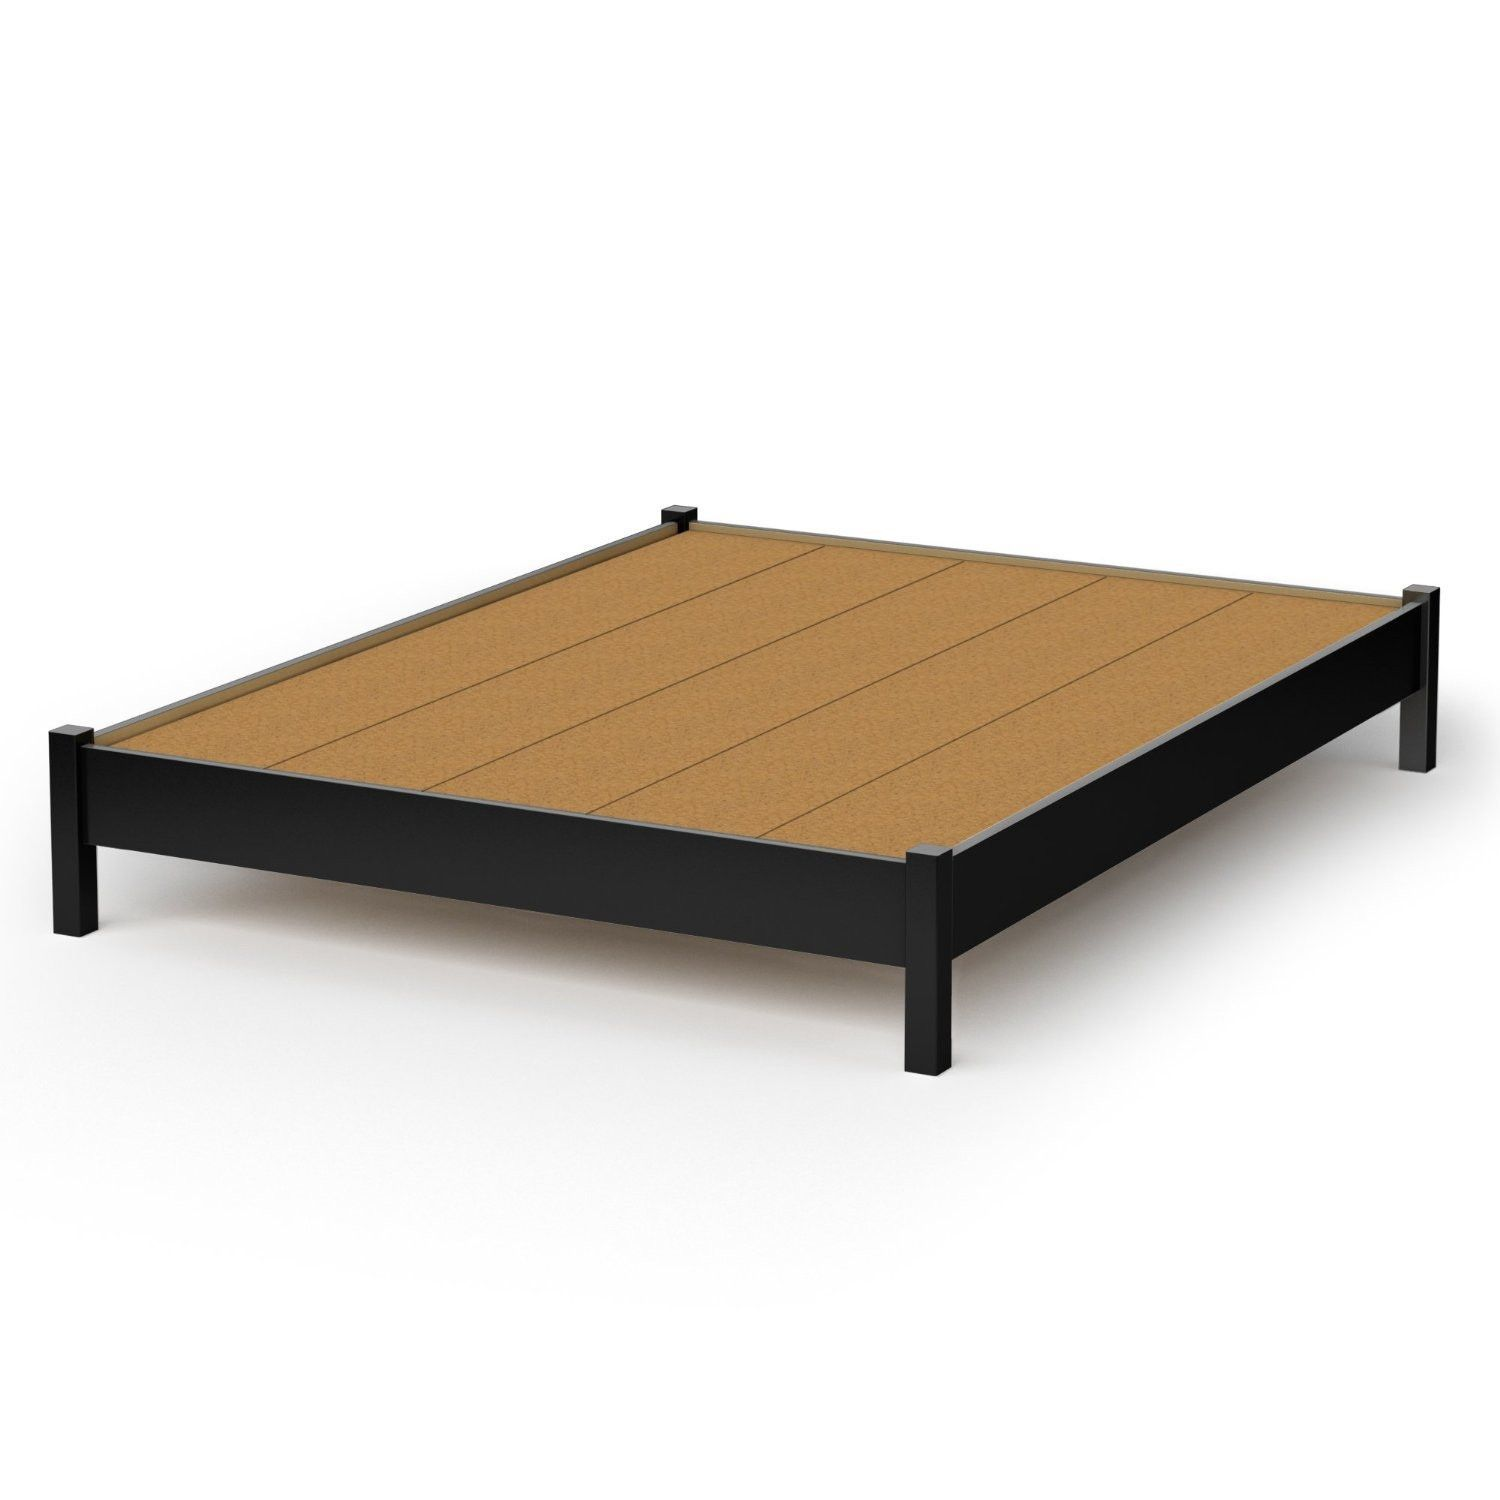 queen size platform bed in black finish  simple modern design  - queen size platform bed in black finish  simple modern design